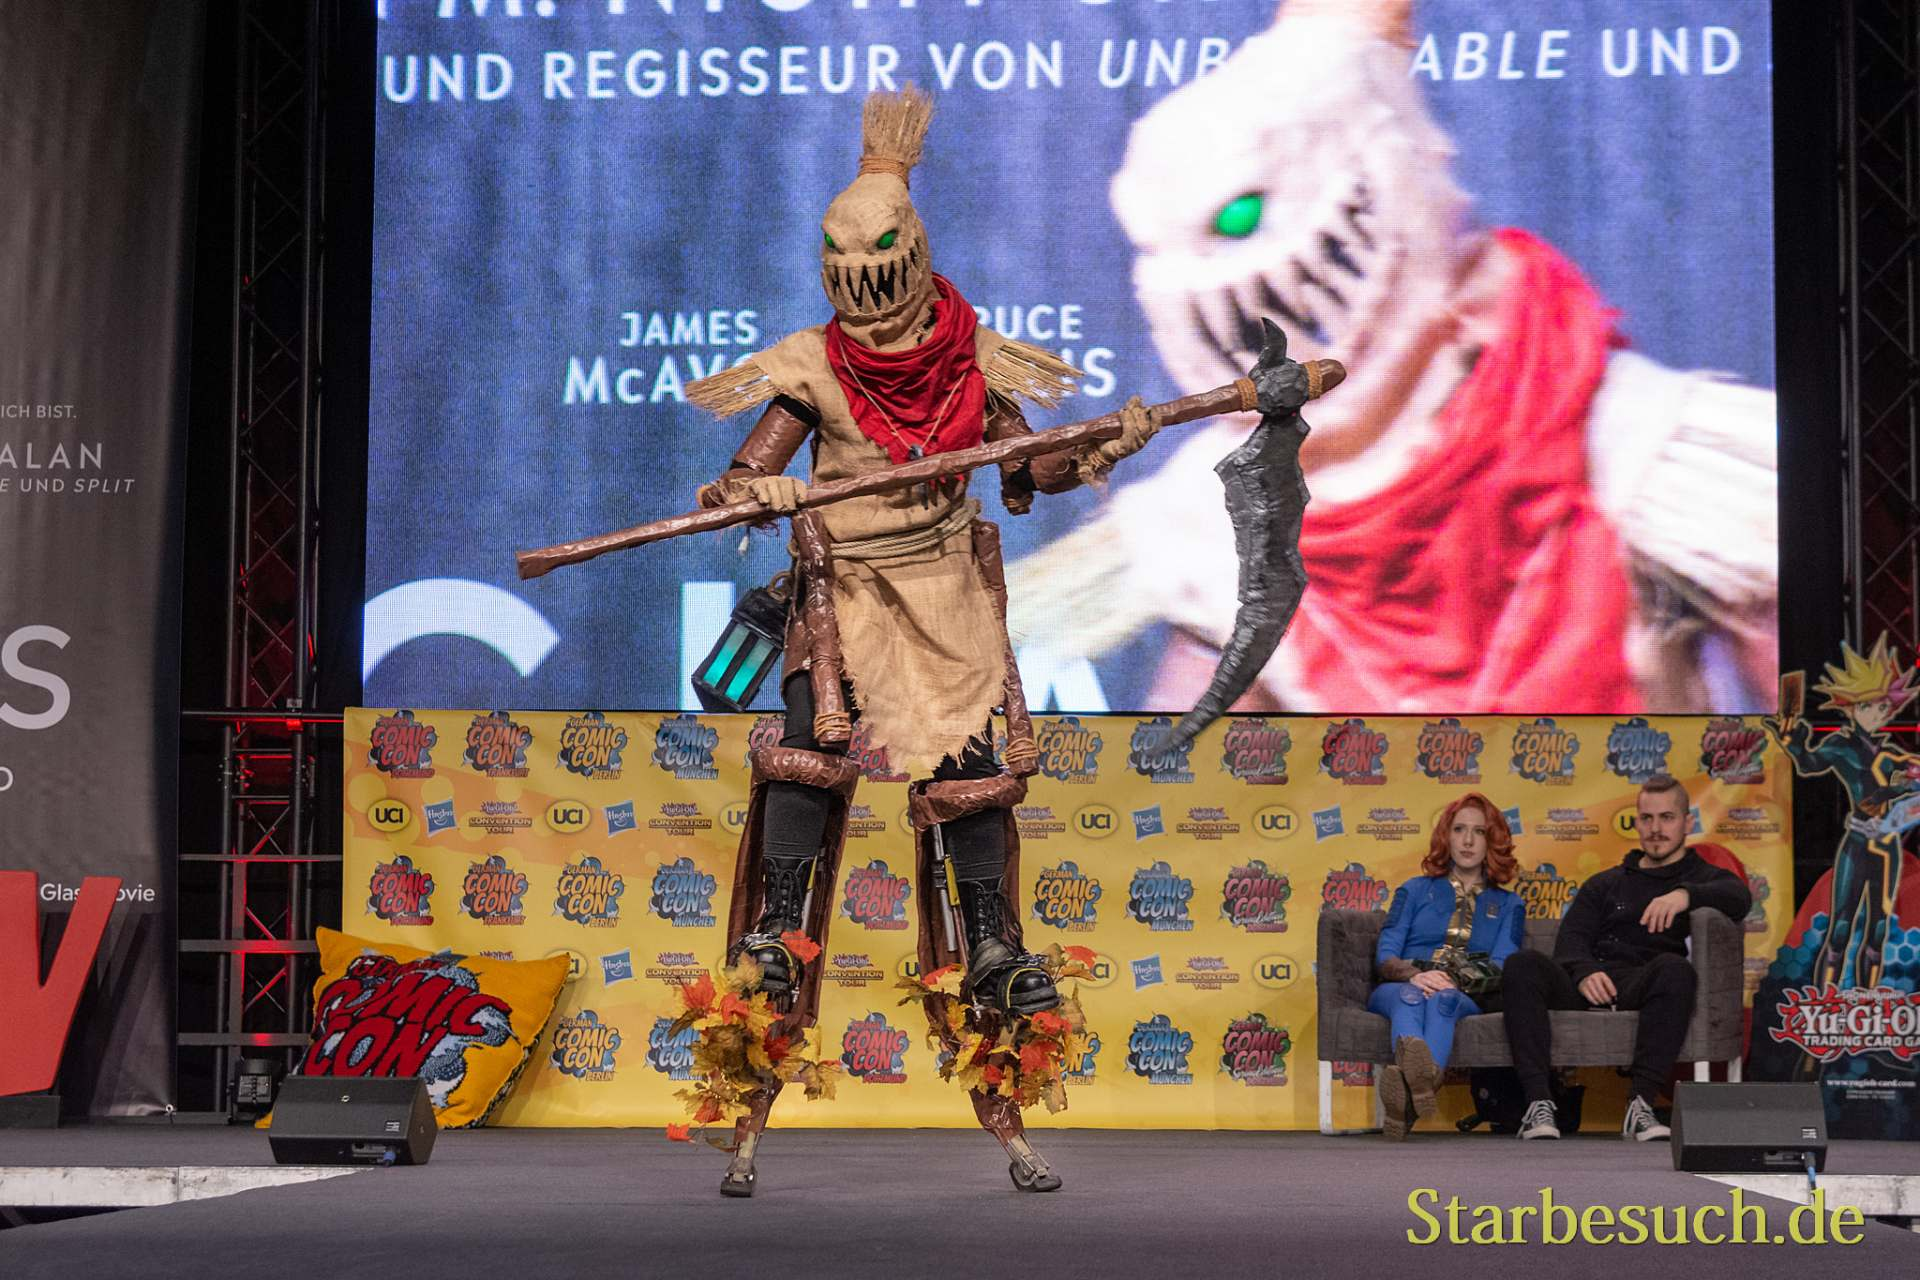 DORTMUND, GERMANY - December 1st 2018: Cosplayer RedNightCosplay portrays the character Fiddlesticks from League of Legends (Game) at German Comic Con Dortmund, a two day fan convention